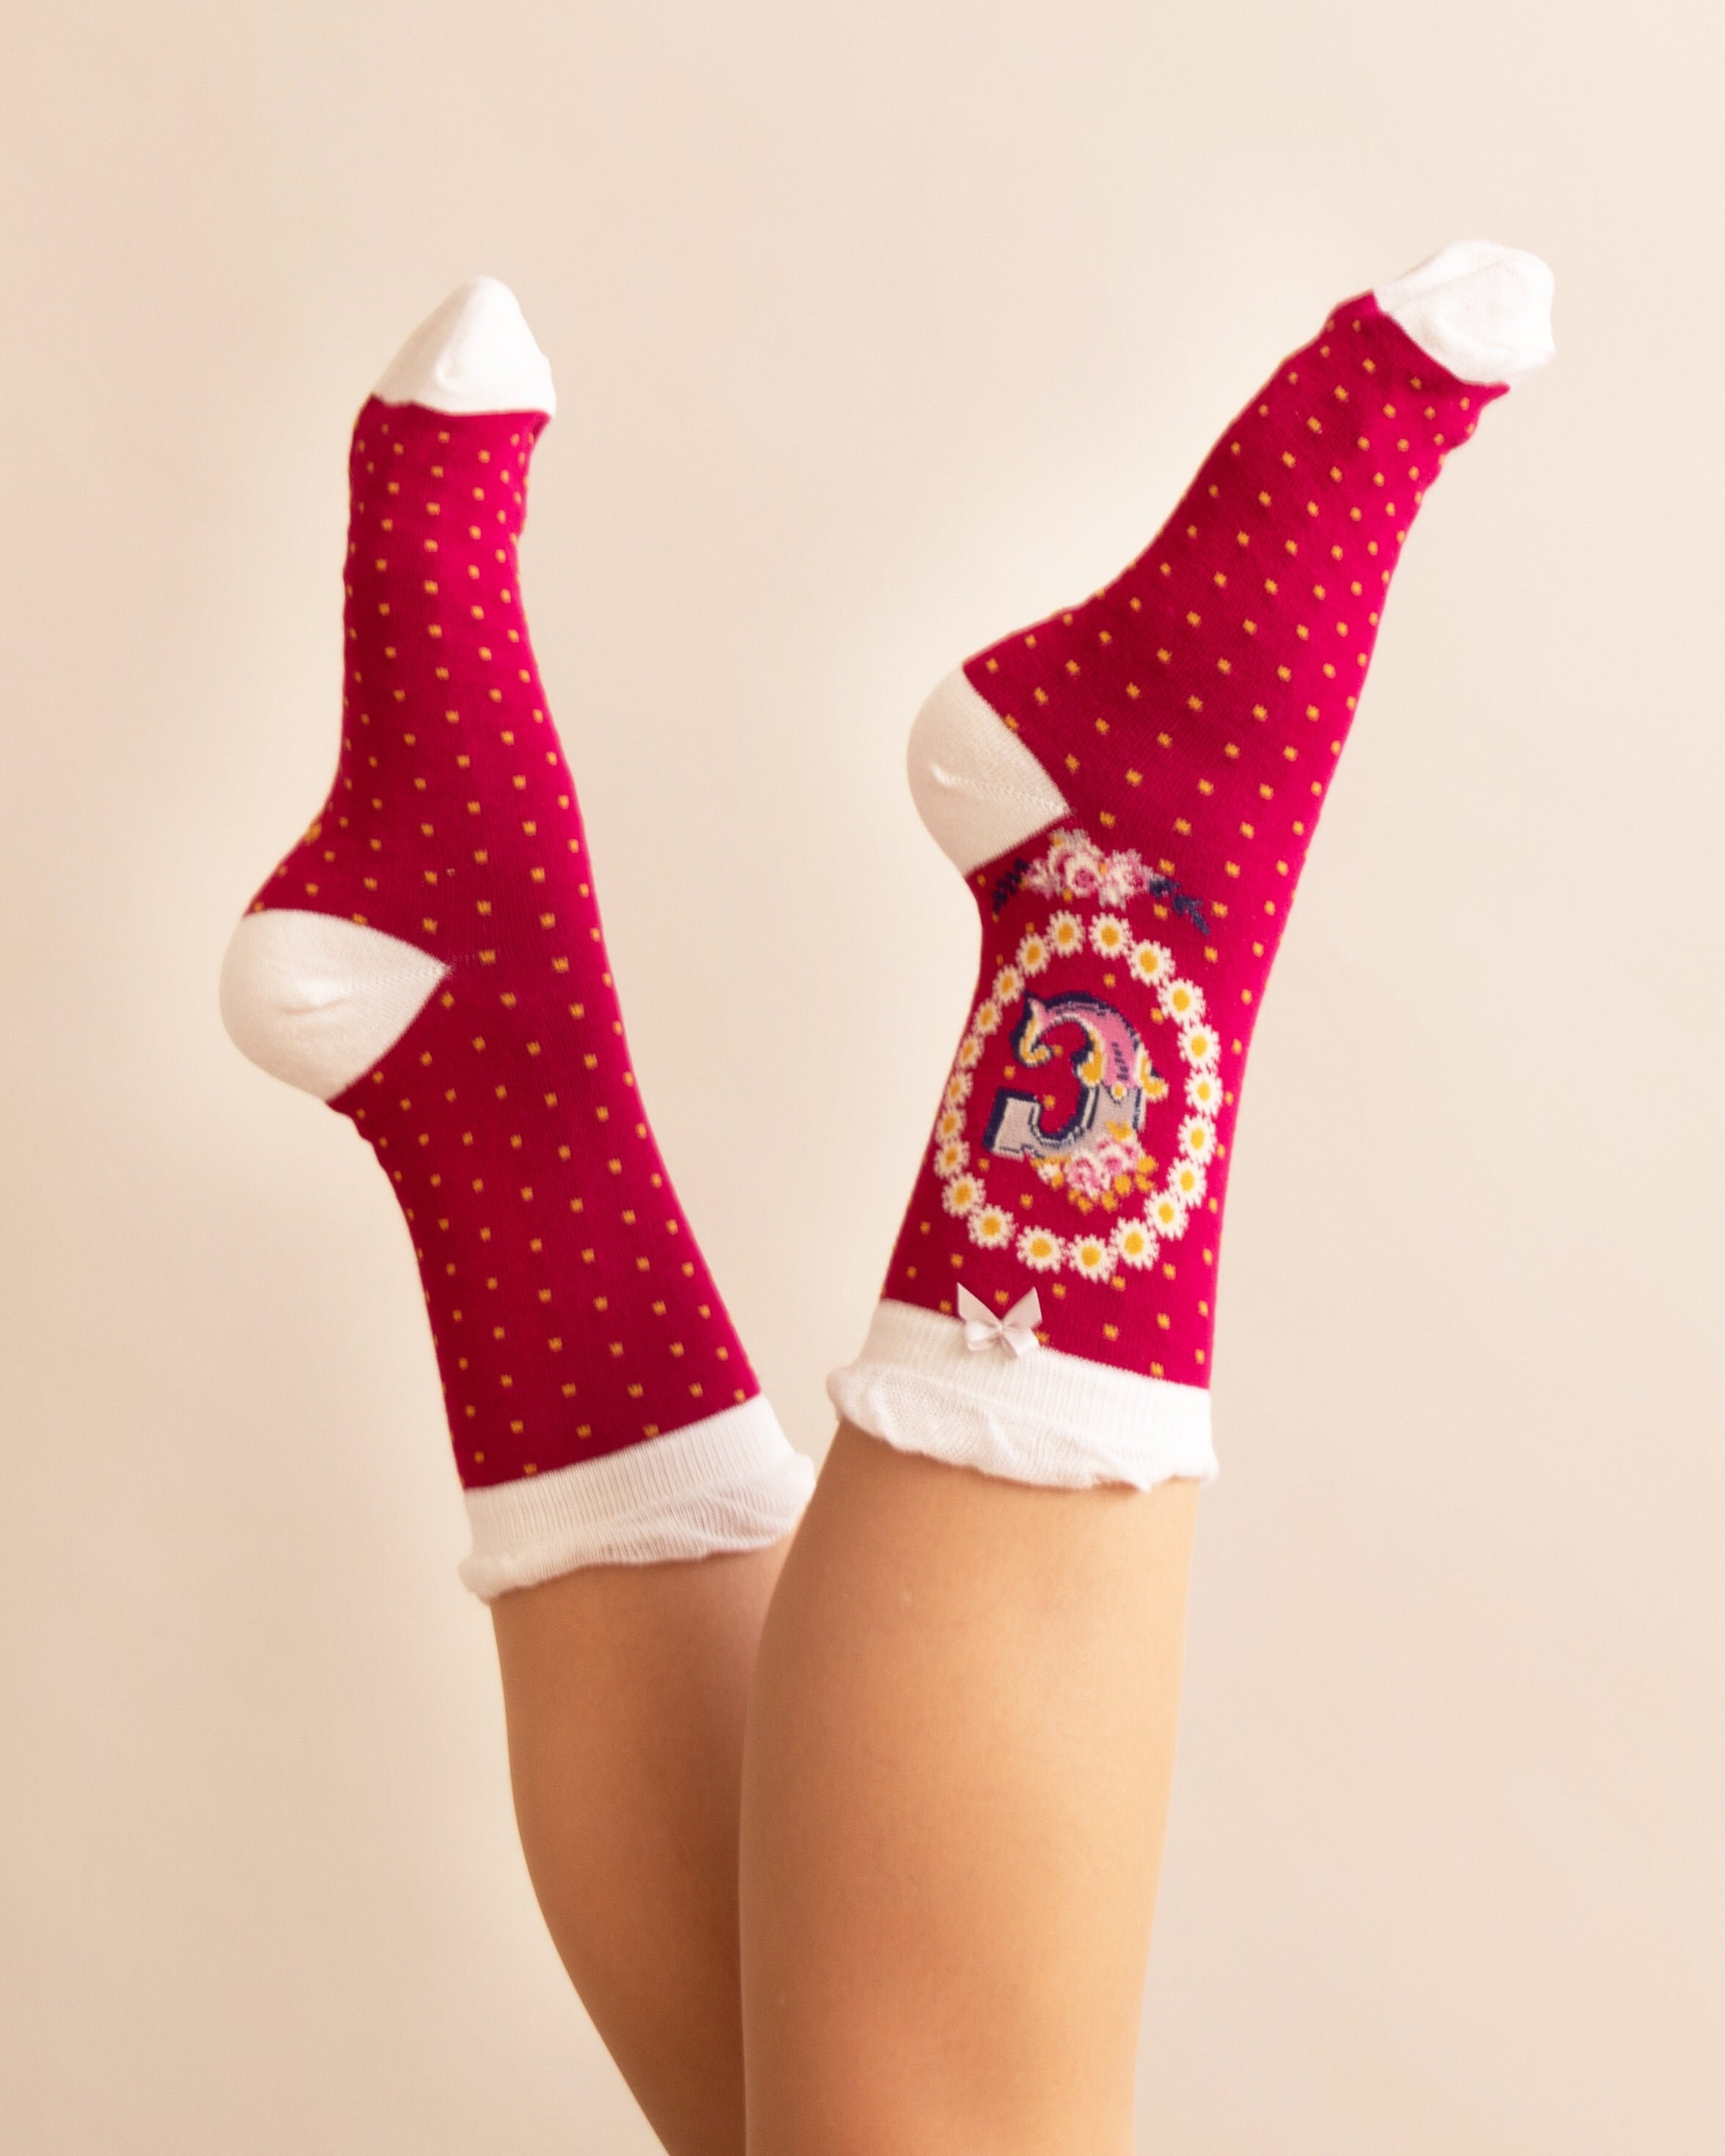 Powder Alphabet Socks - Letter C